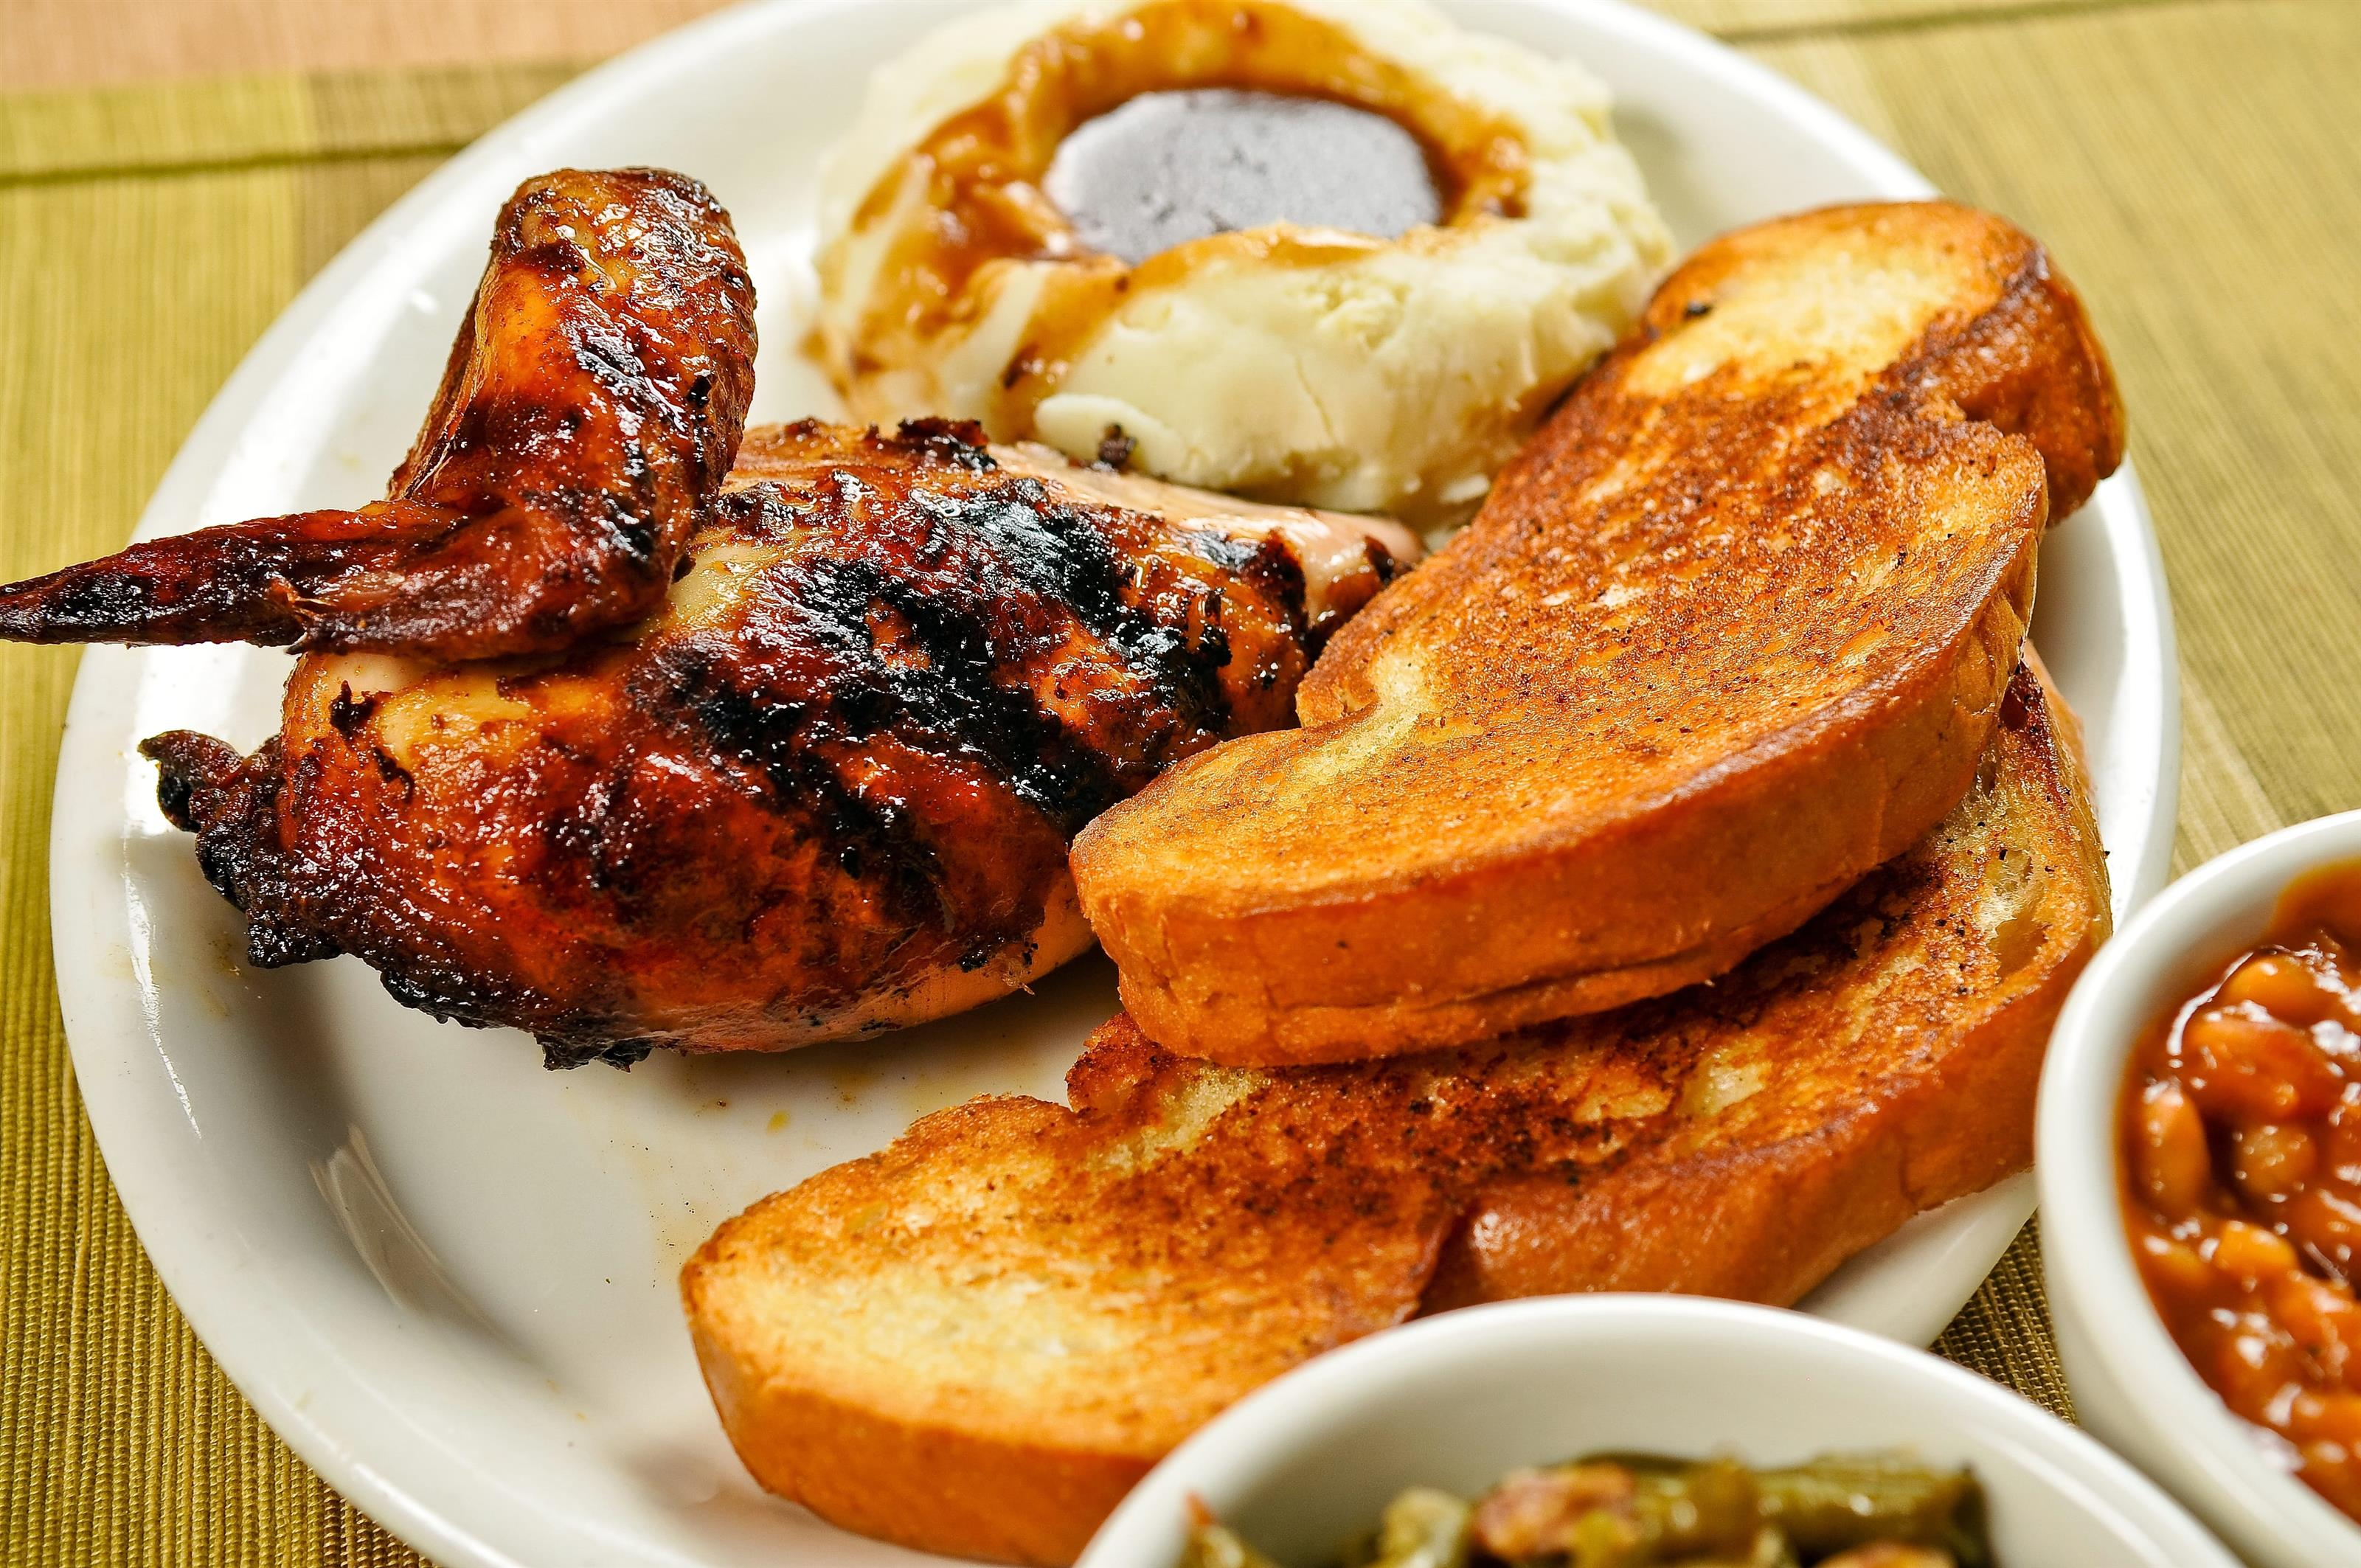 baked beans, mashed potatoes with gravy, toasted bread and barbecue chicken